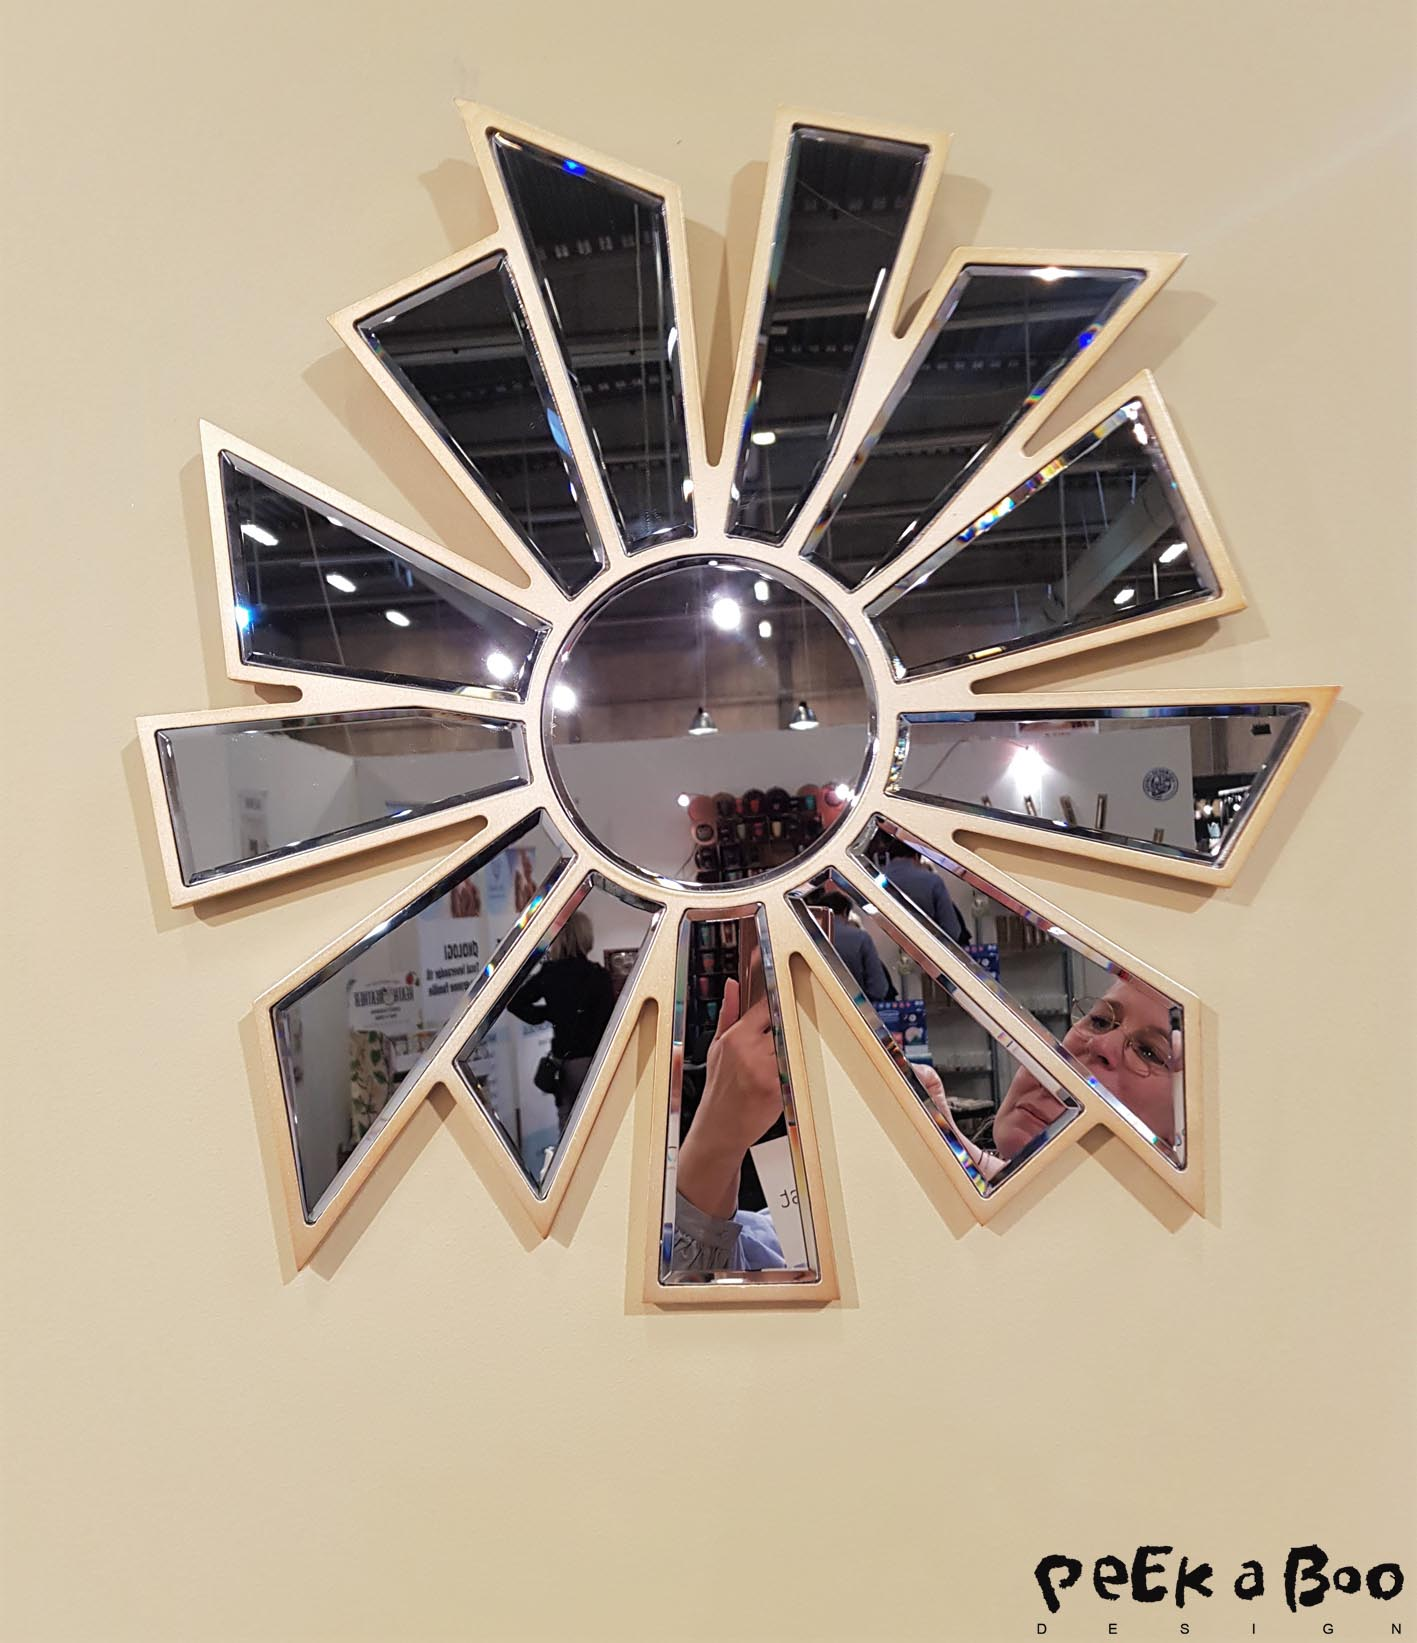 Another new danish brand is focusing on more is more...Eden outcast has made this star mirror.